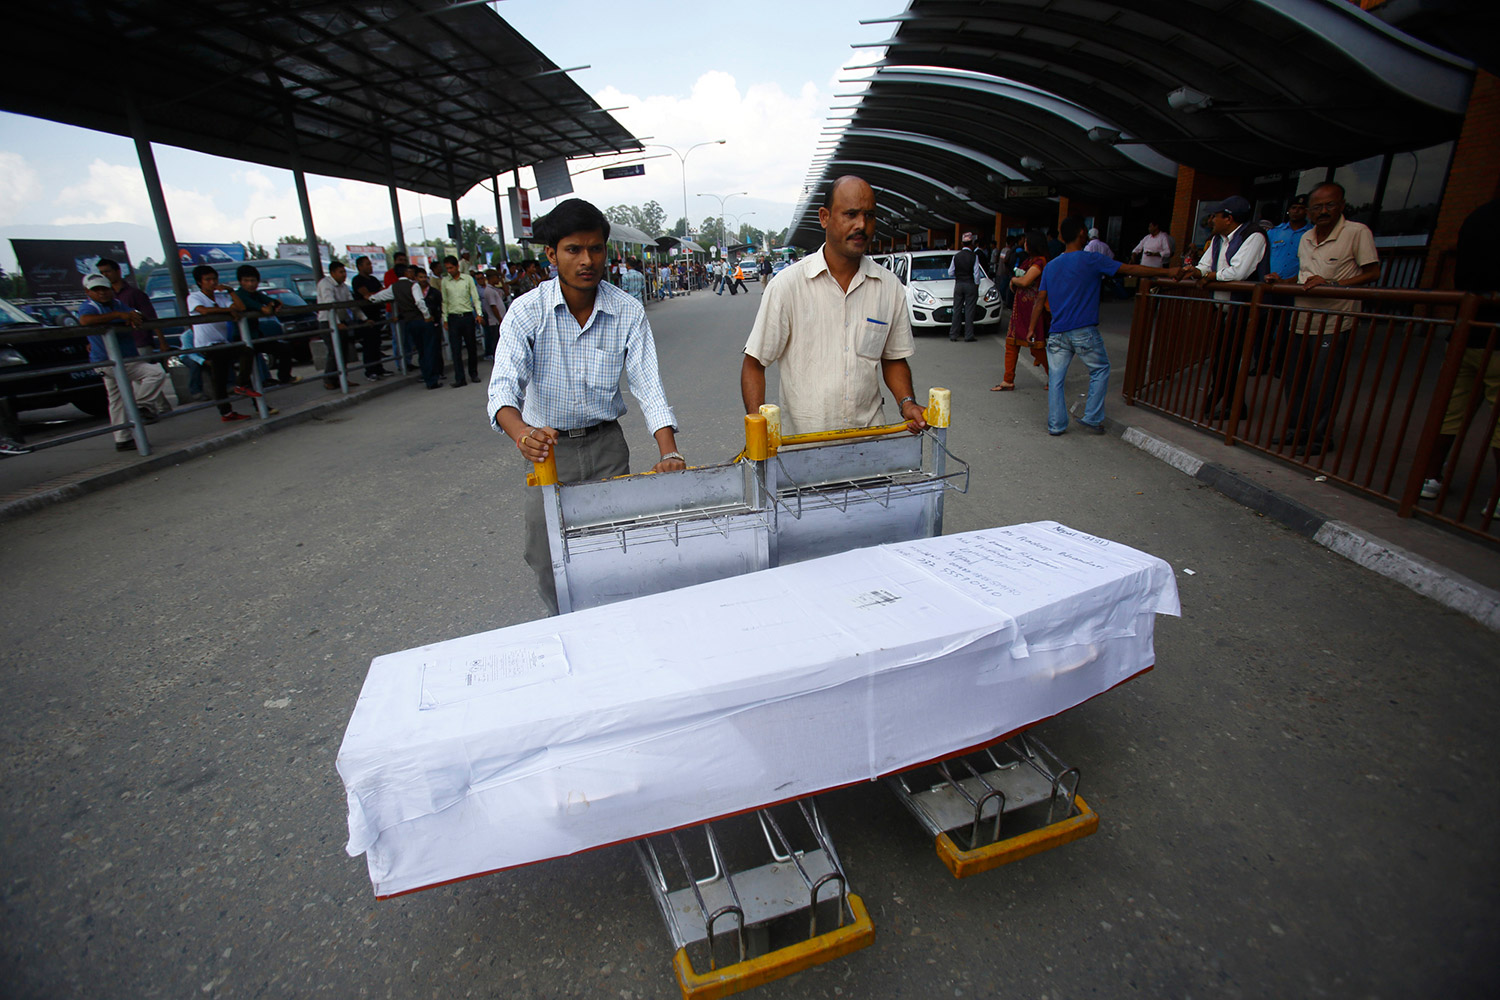 Family members use airport trolleys to transport the dead body of a Nepali migrant worker Pradip Bhandari, who according to his brother was killed in a workplace mishap in Malaysia. As per Department of Foreign Employment, some 3015 Nepali migrant workers died between mid-2006 to April 2014 with the highest number of deaths in Malaysia, Qatar and Saudi Arabia. Fifty-three Nepali workers died in Qatar between January and April 13 this year alone according to The Guardian. October 2013. Photo: Navesh Chitrakar